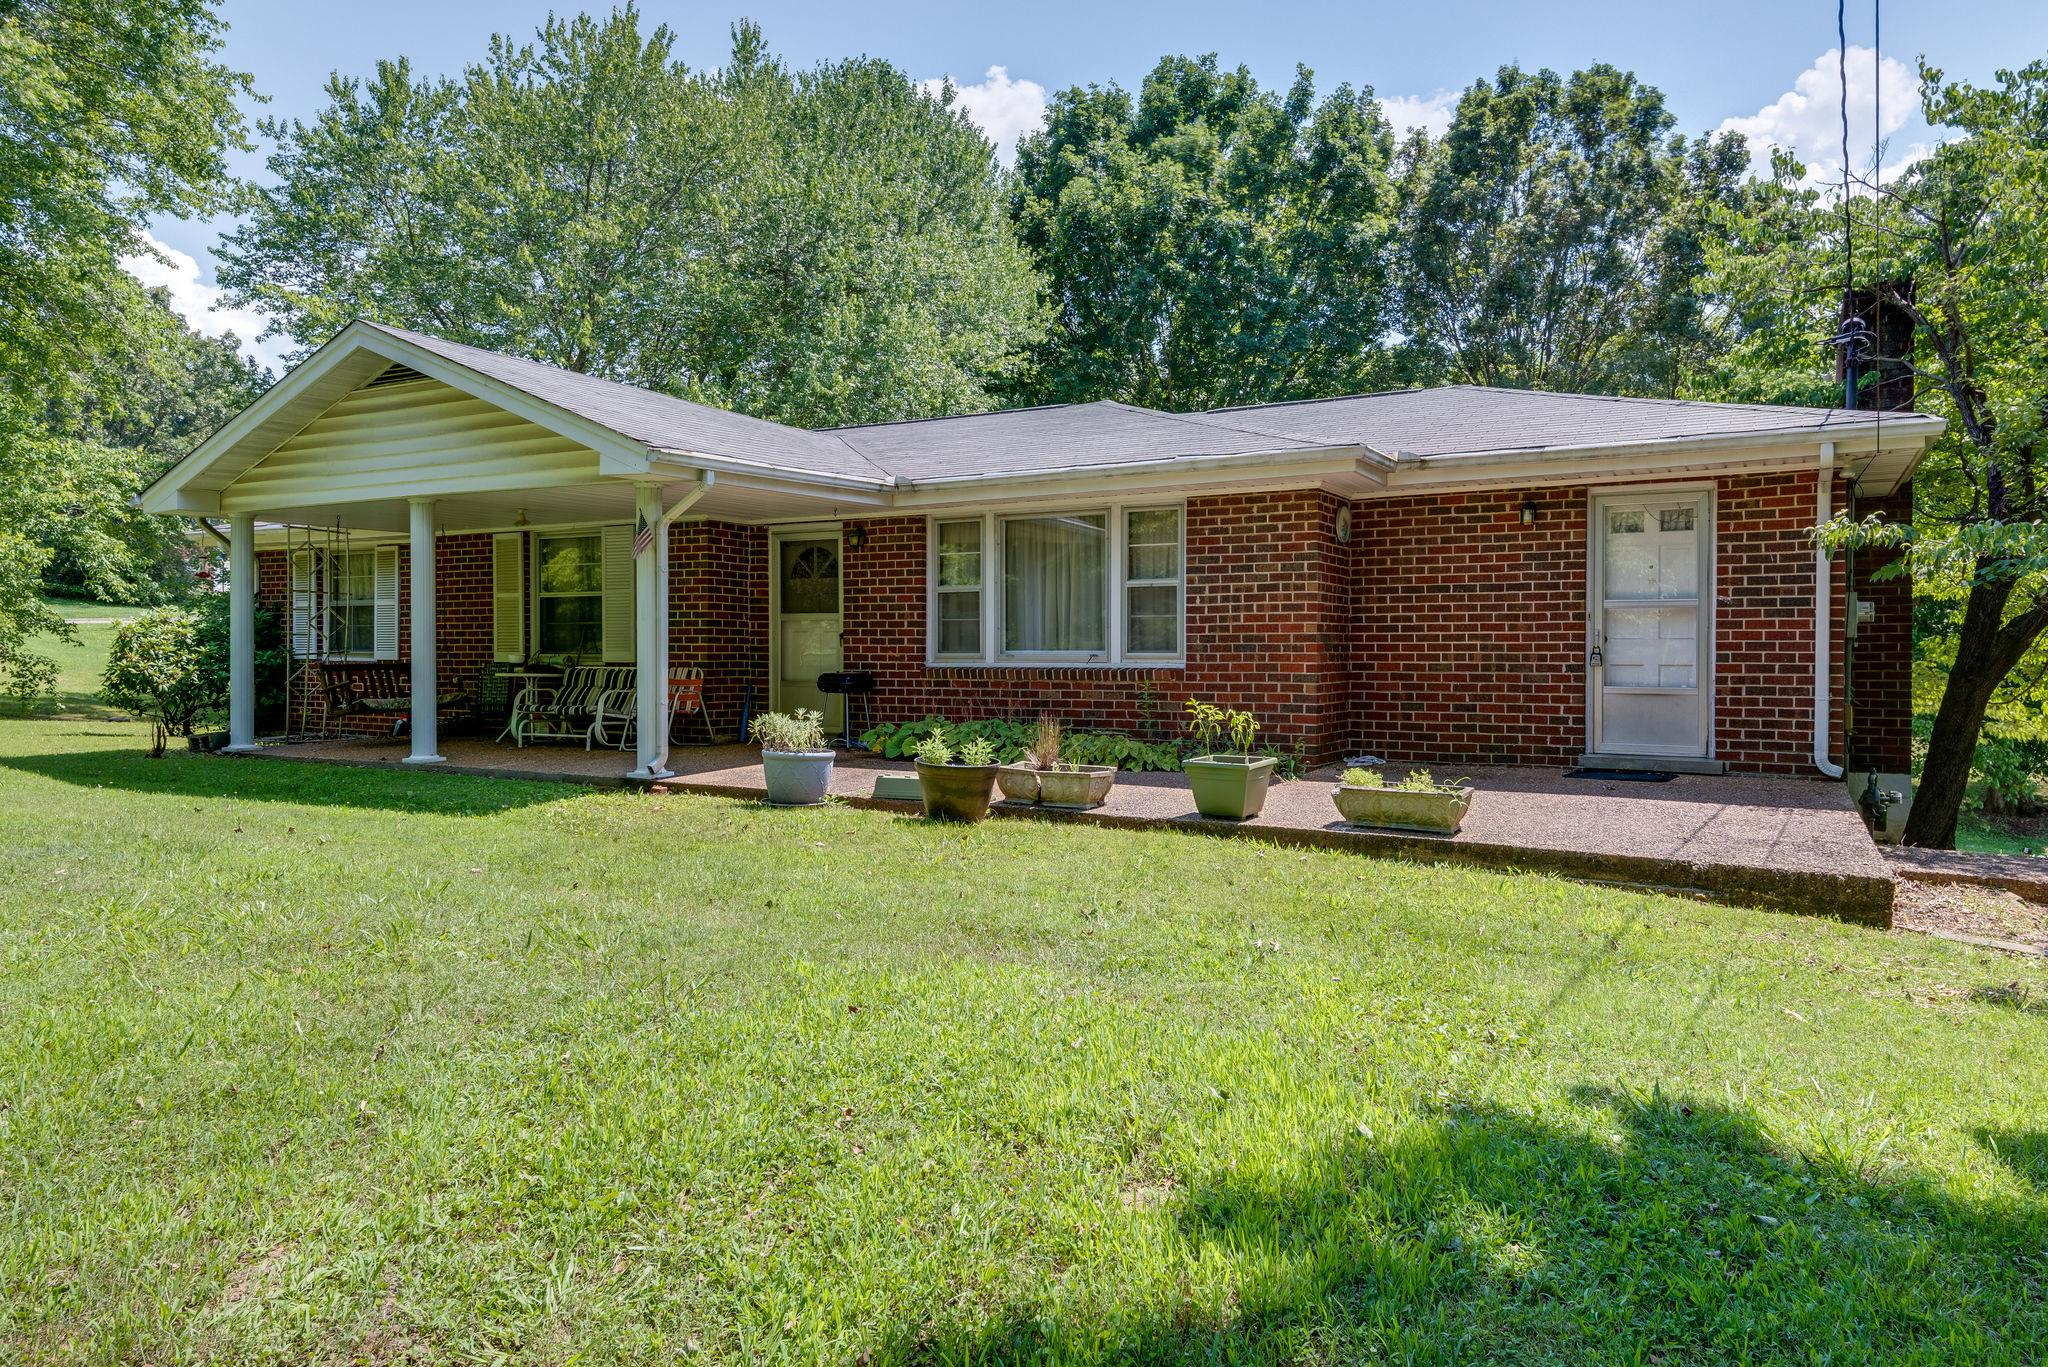 313 hwy 96, N, Fairview in Williamson County County, TN 37062 Home for Sale